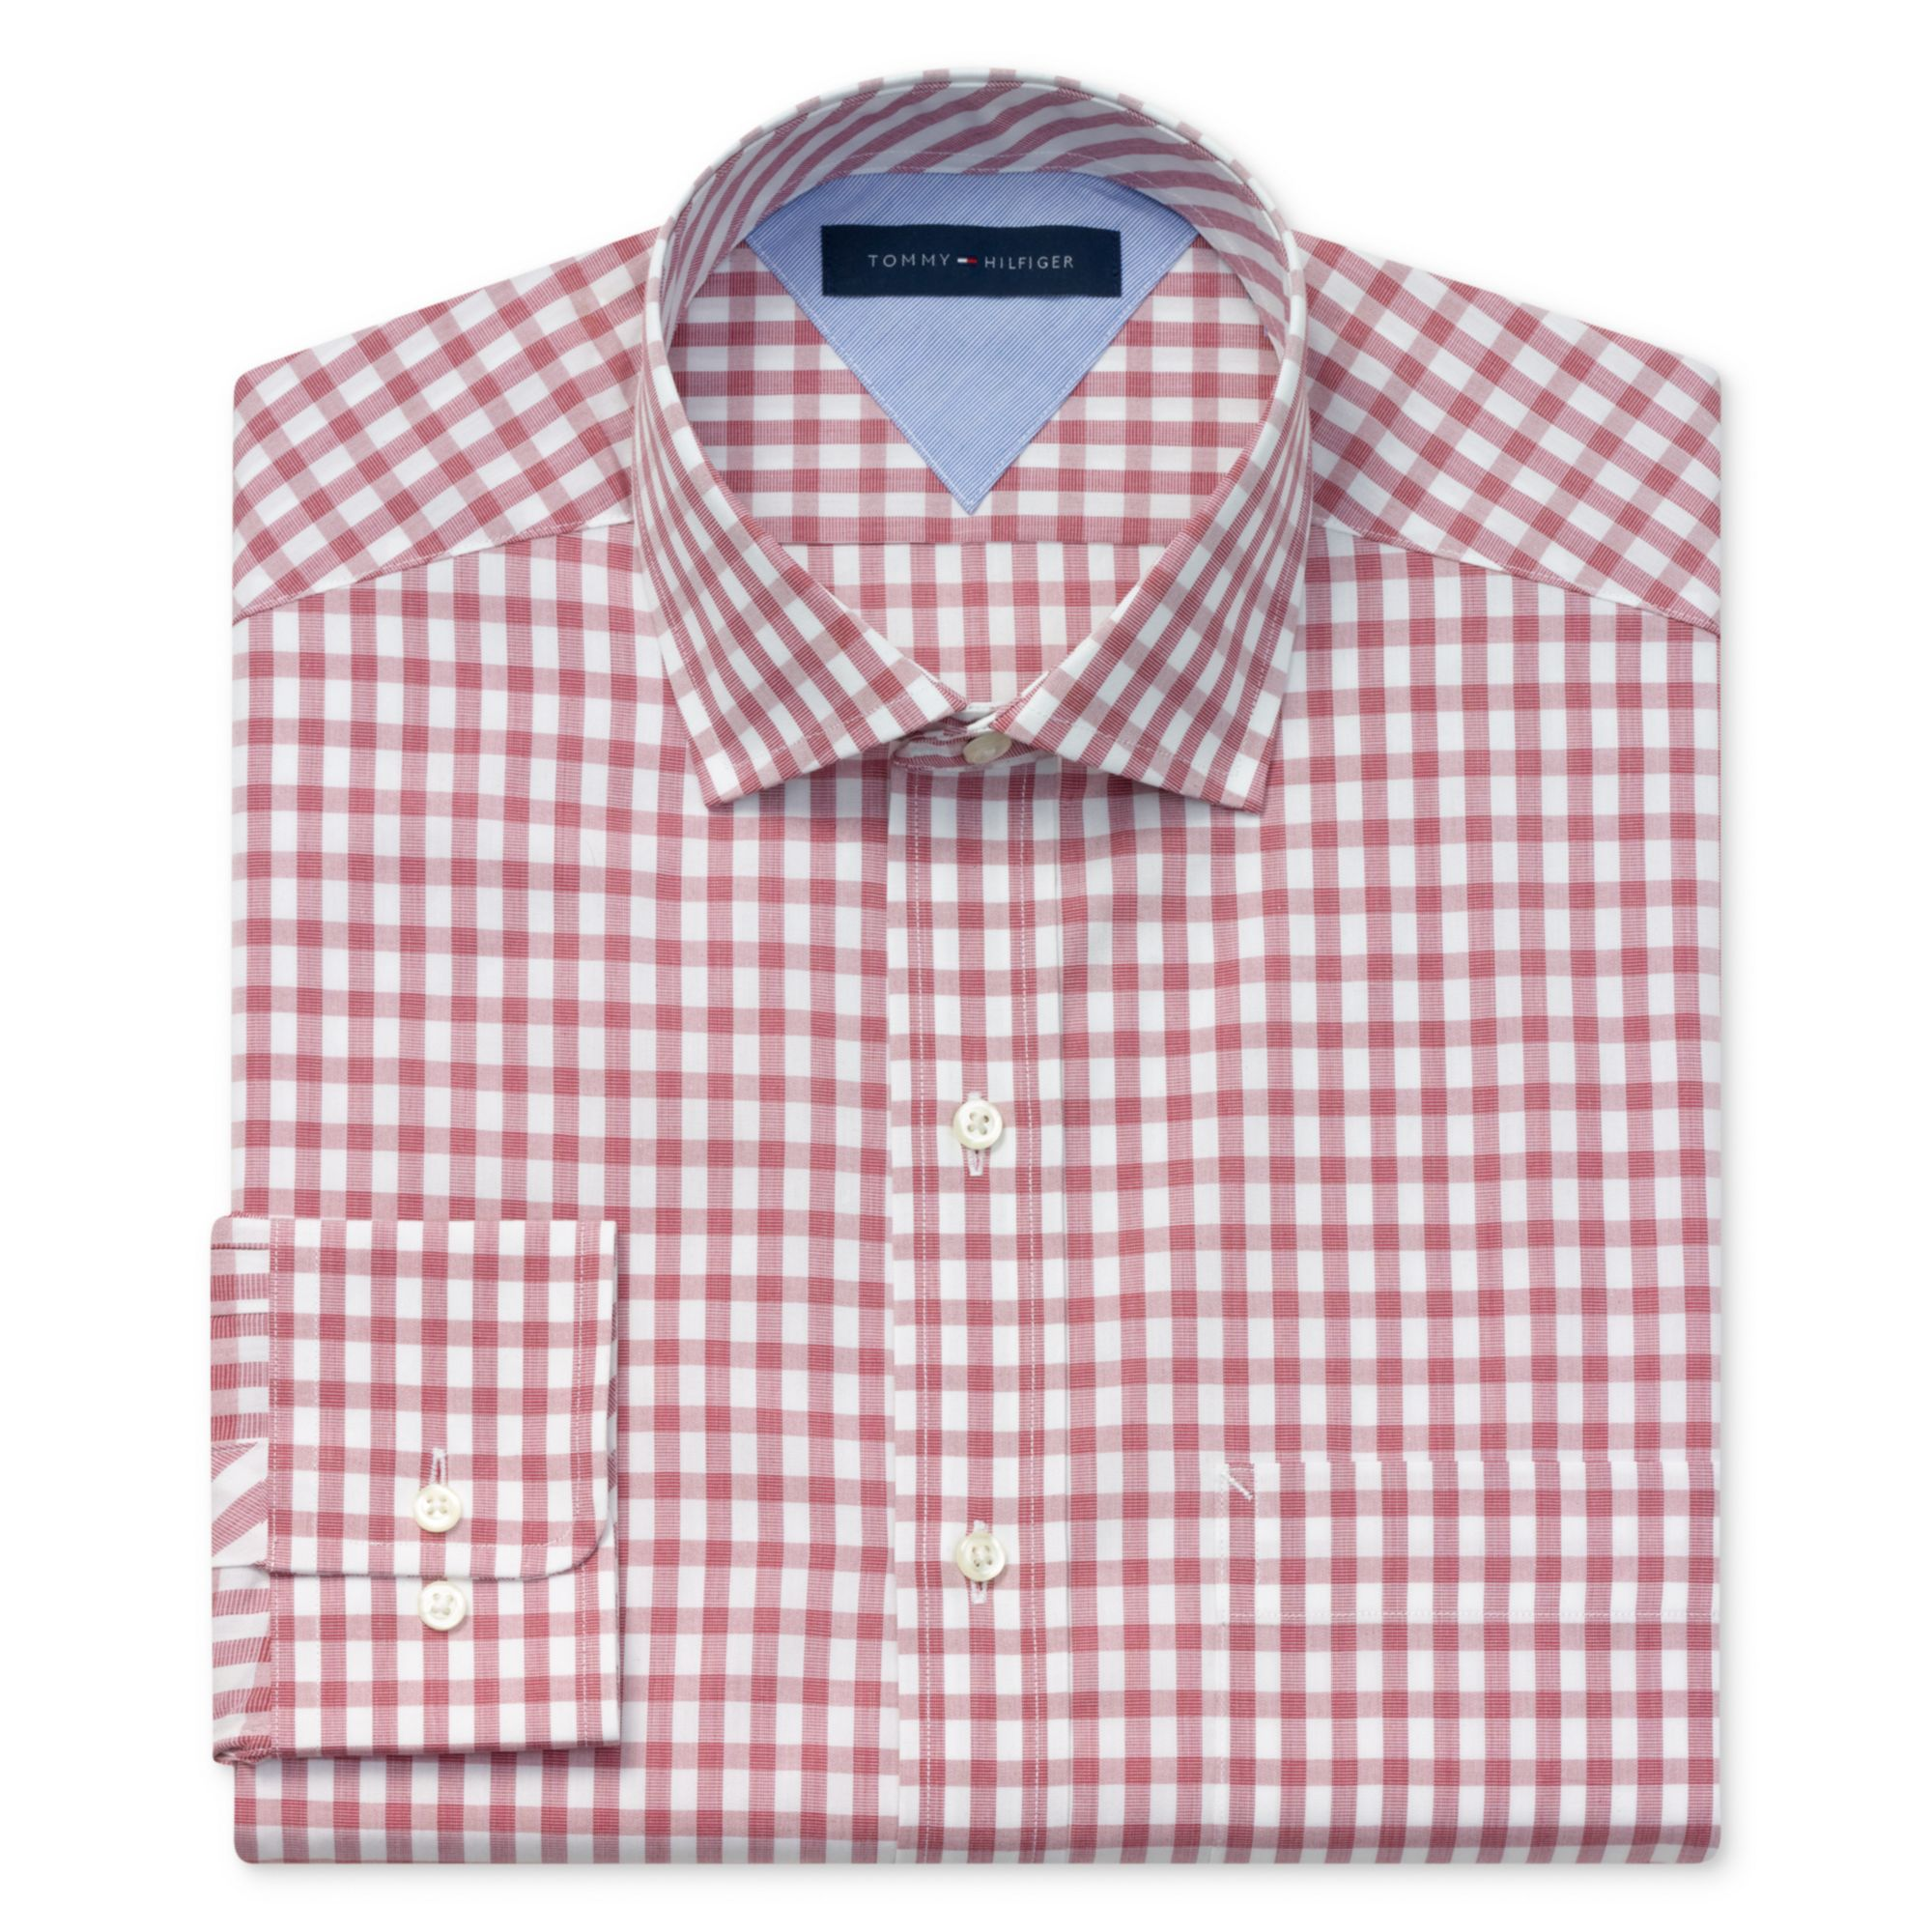 Tommy Hilfiger Exploded Gingham Long Sleeve Shirt In Red